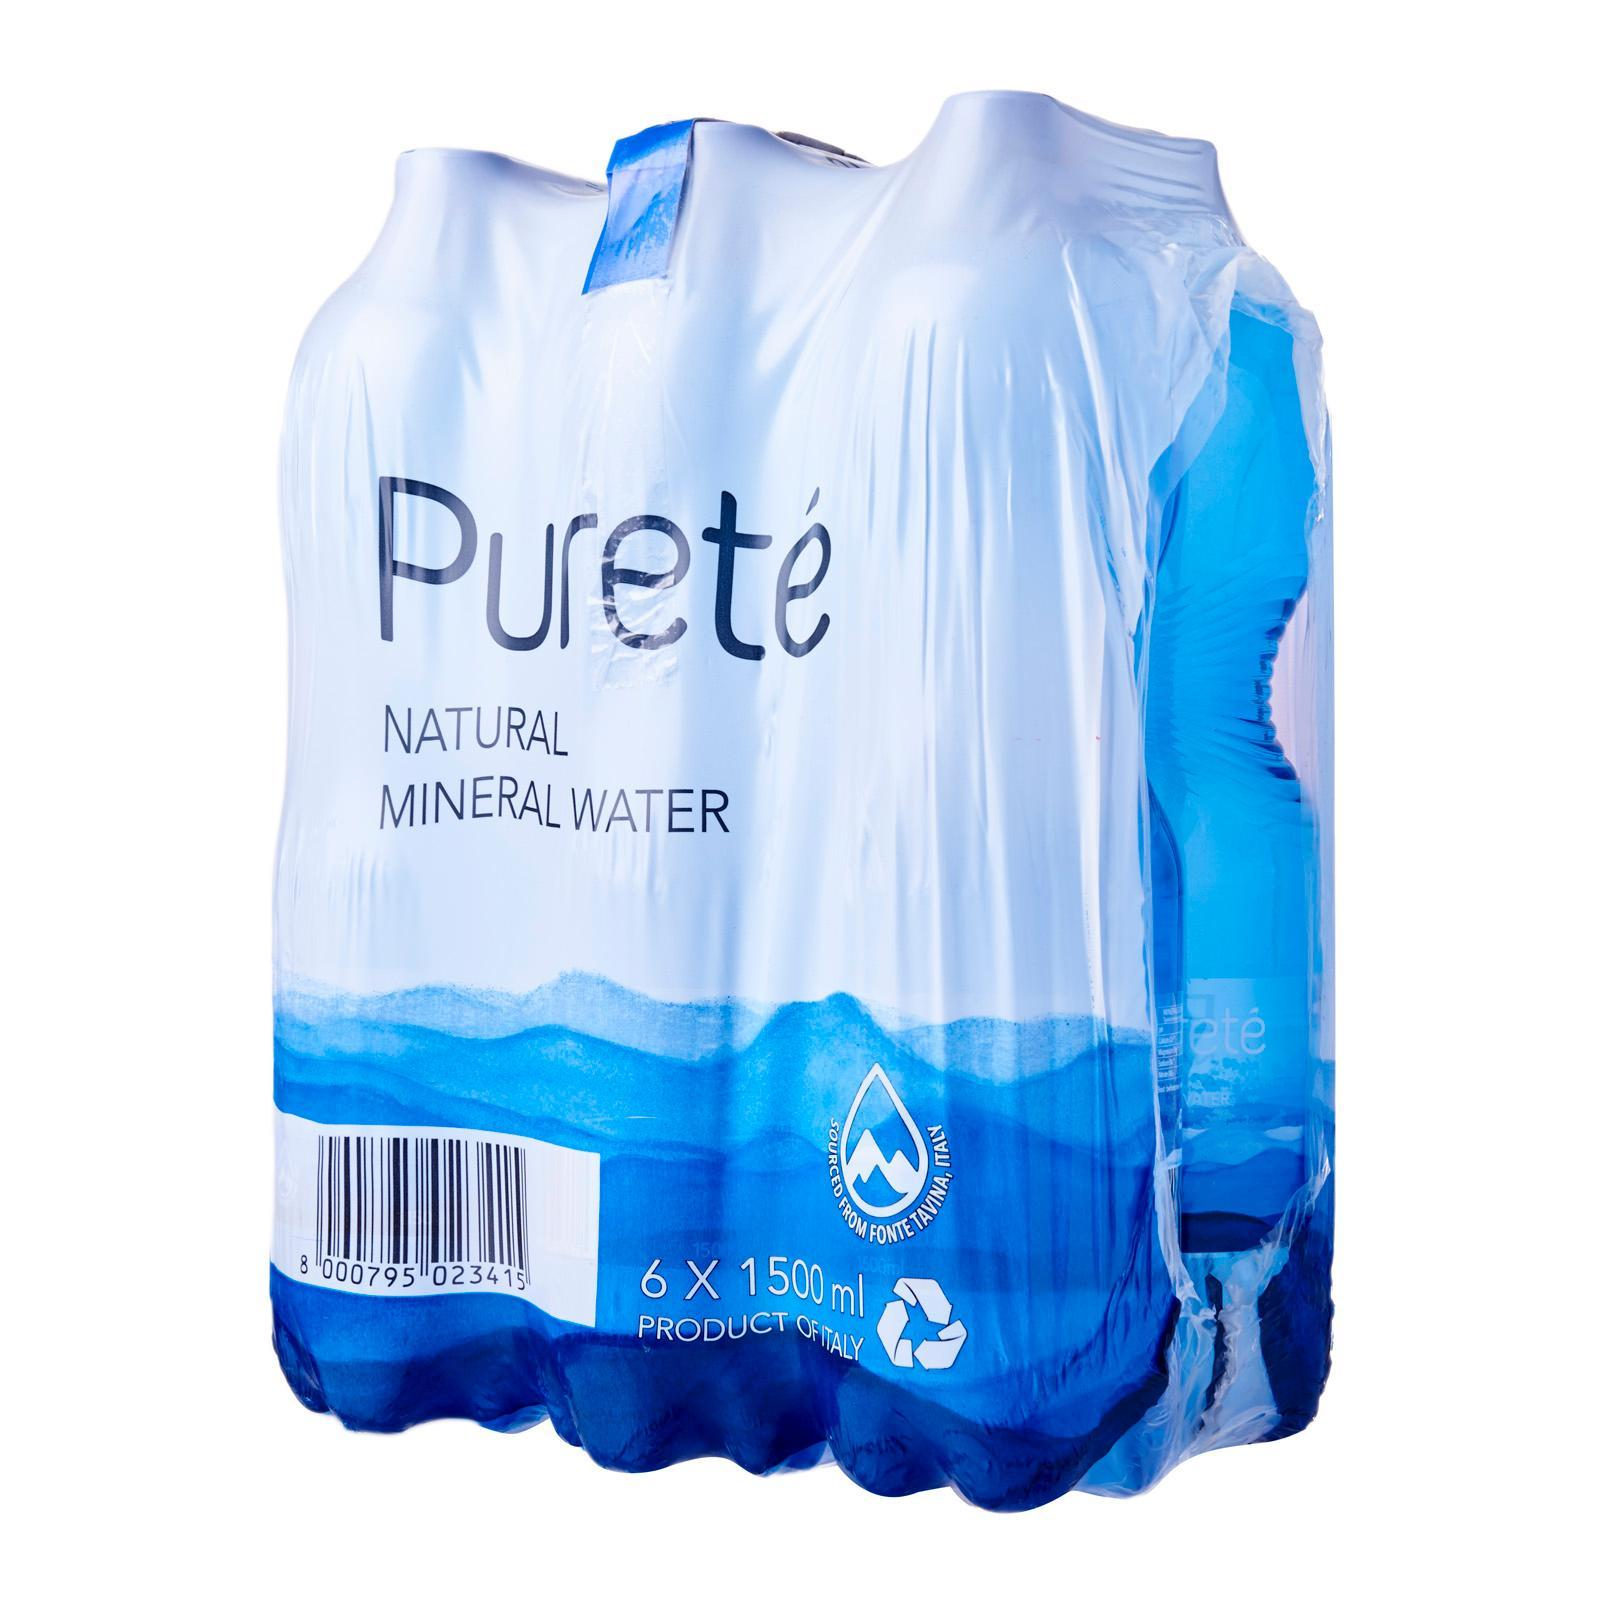 Purete Natural Mineral Water - Case